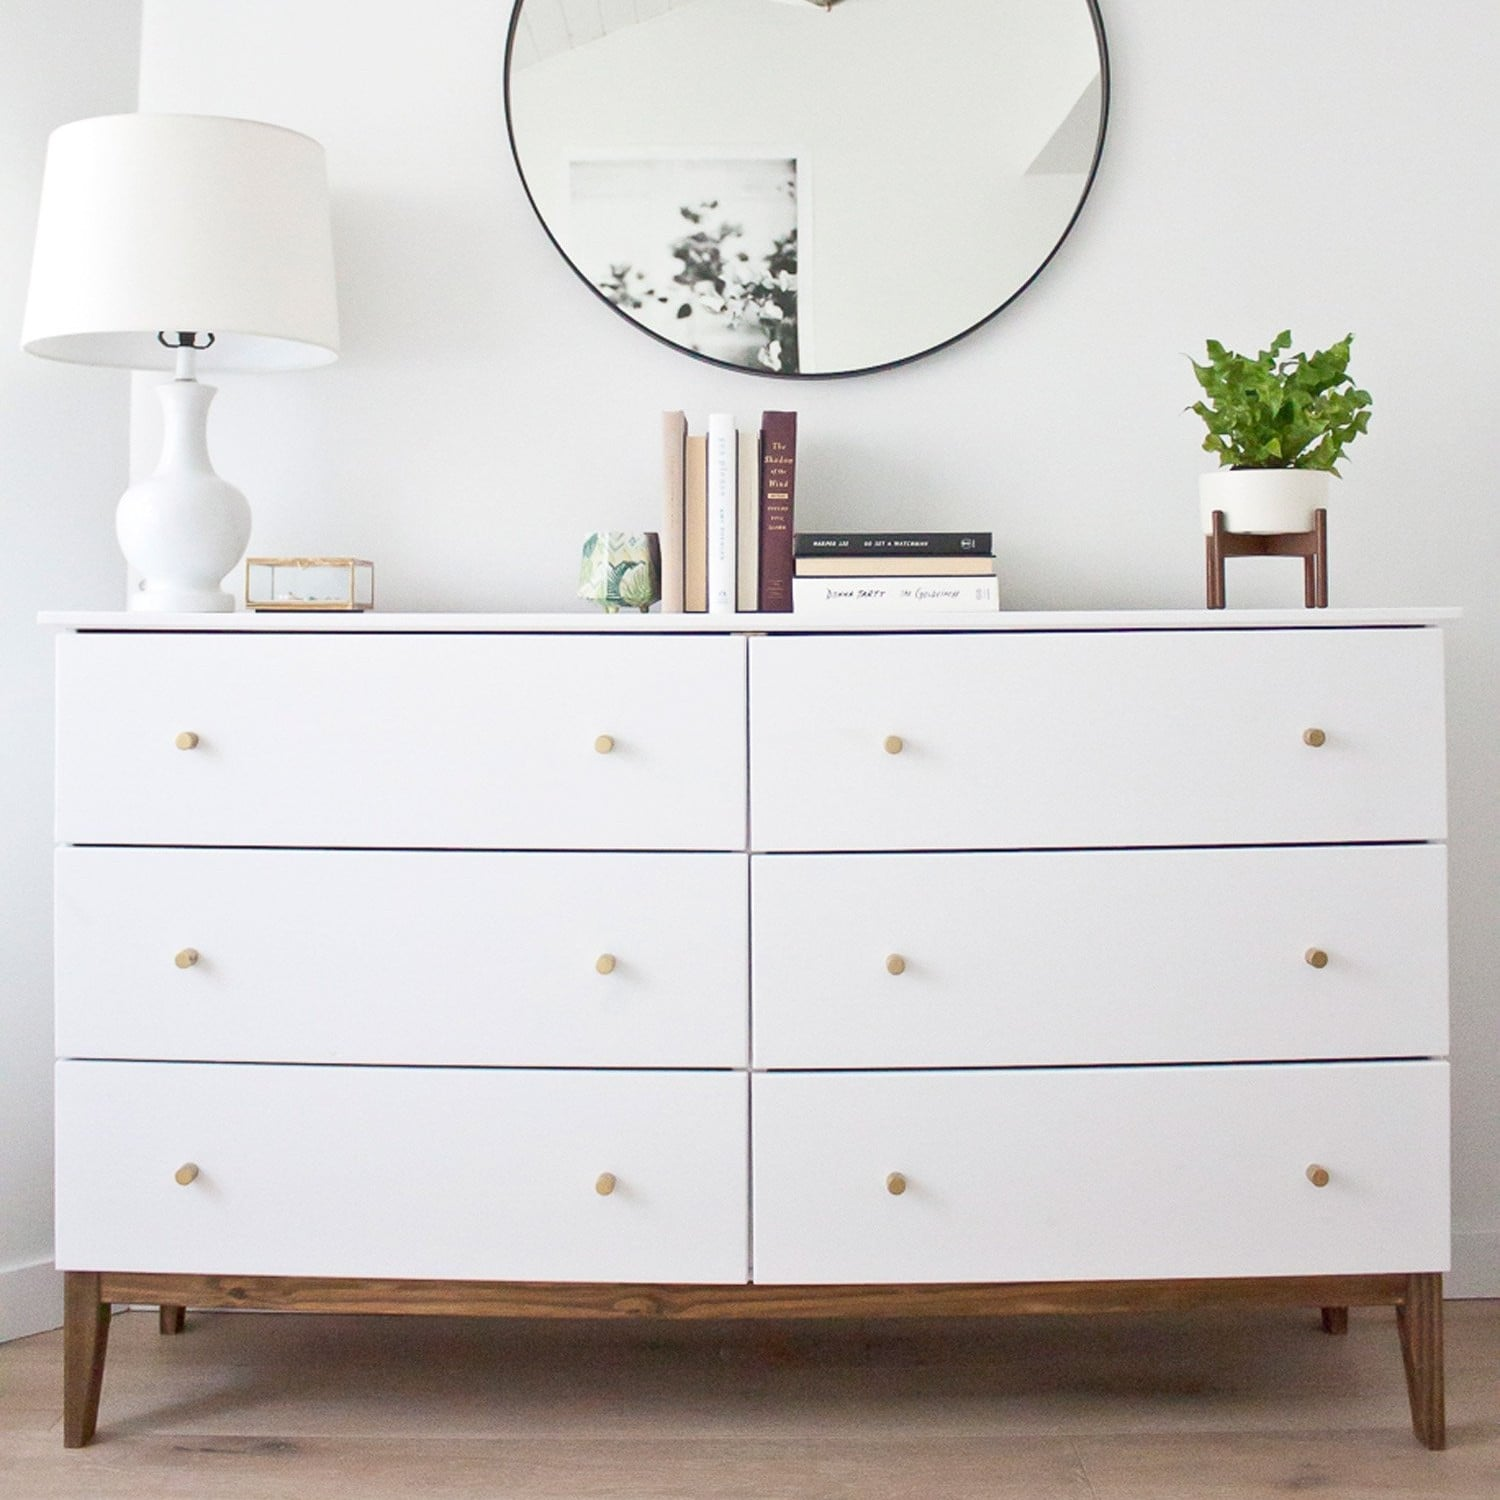 Ikea Bedroom Storage  POPSUGAR Home